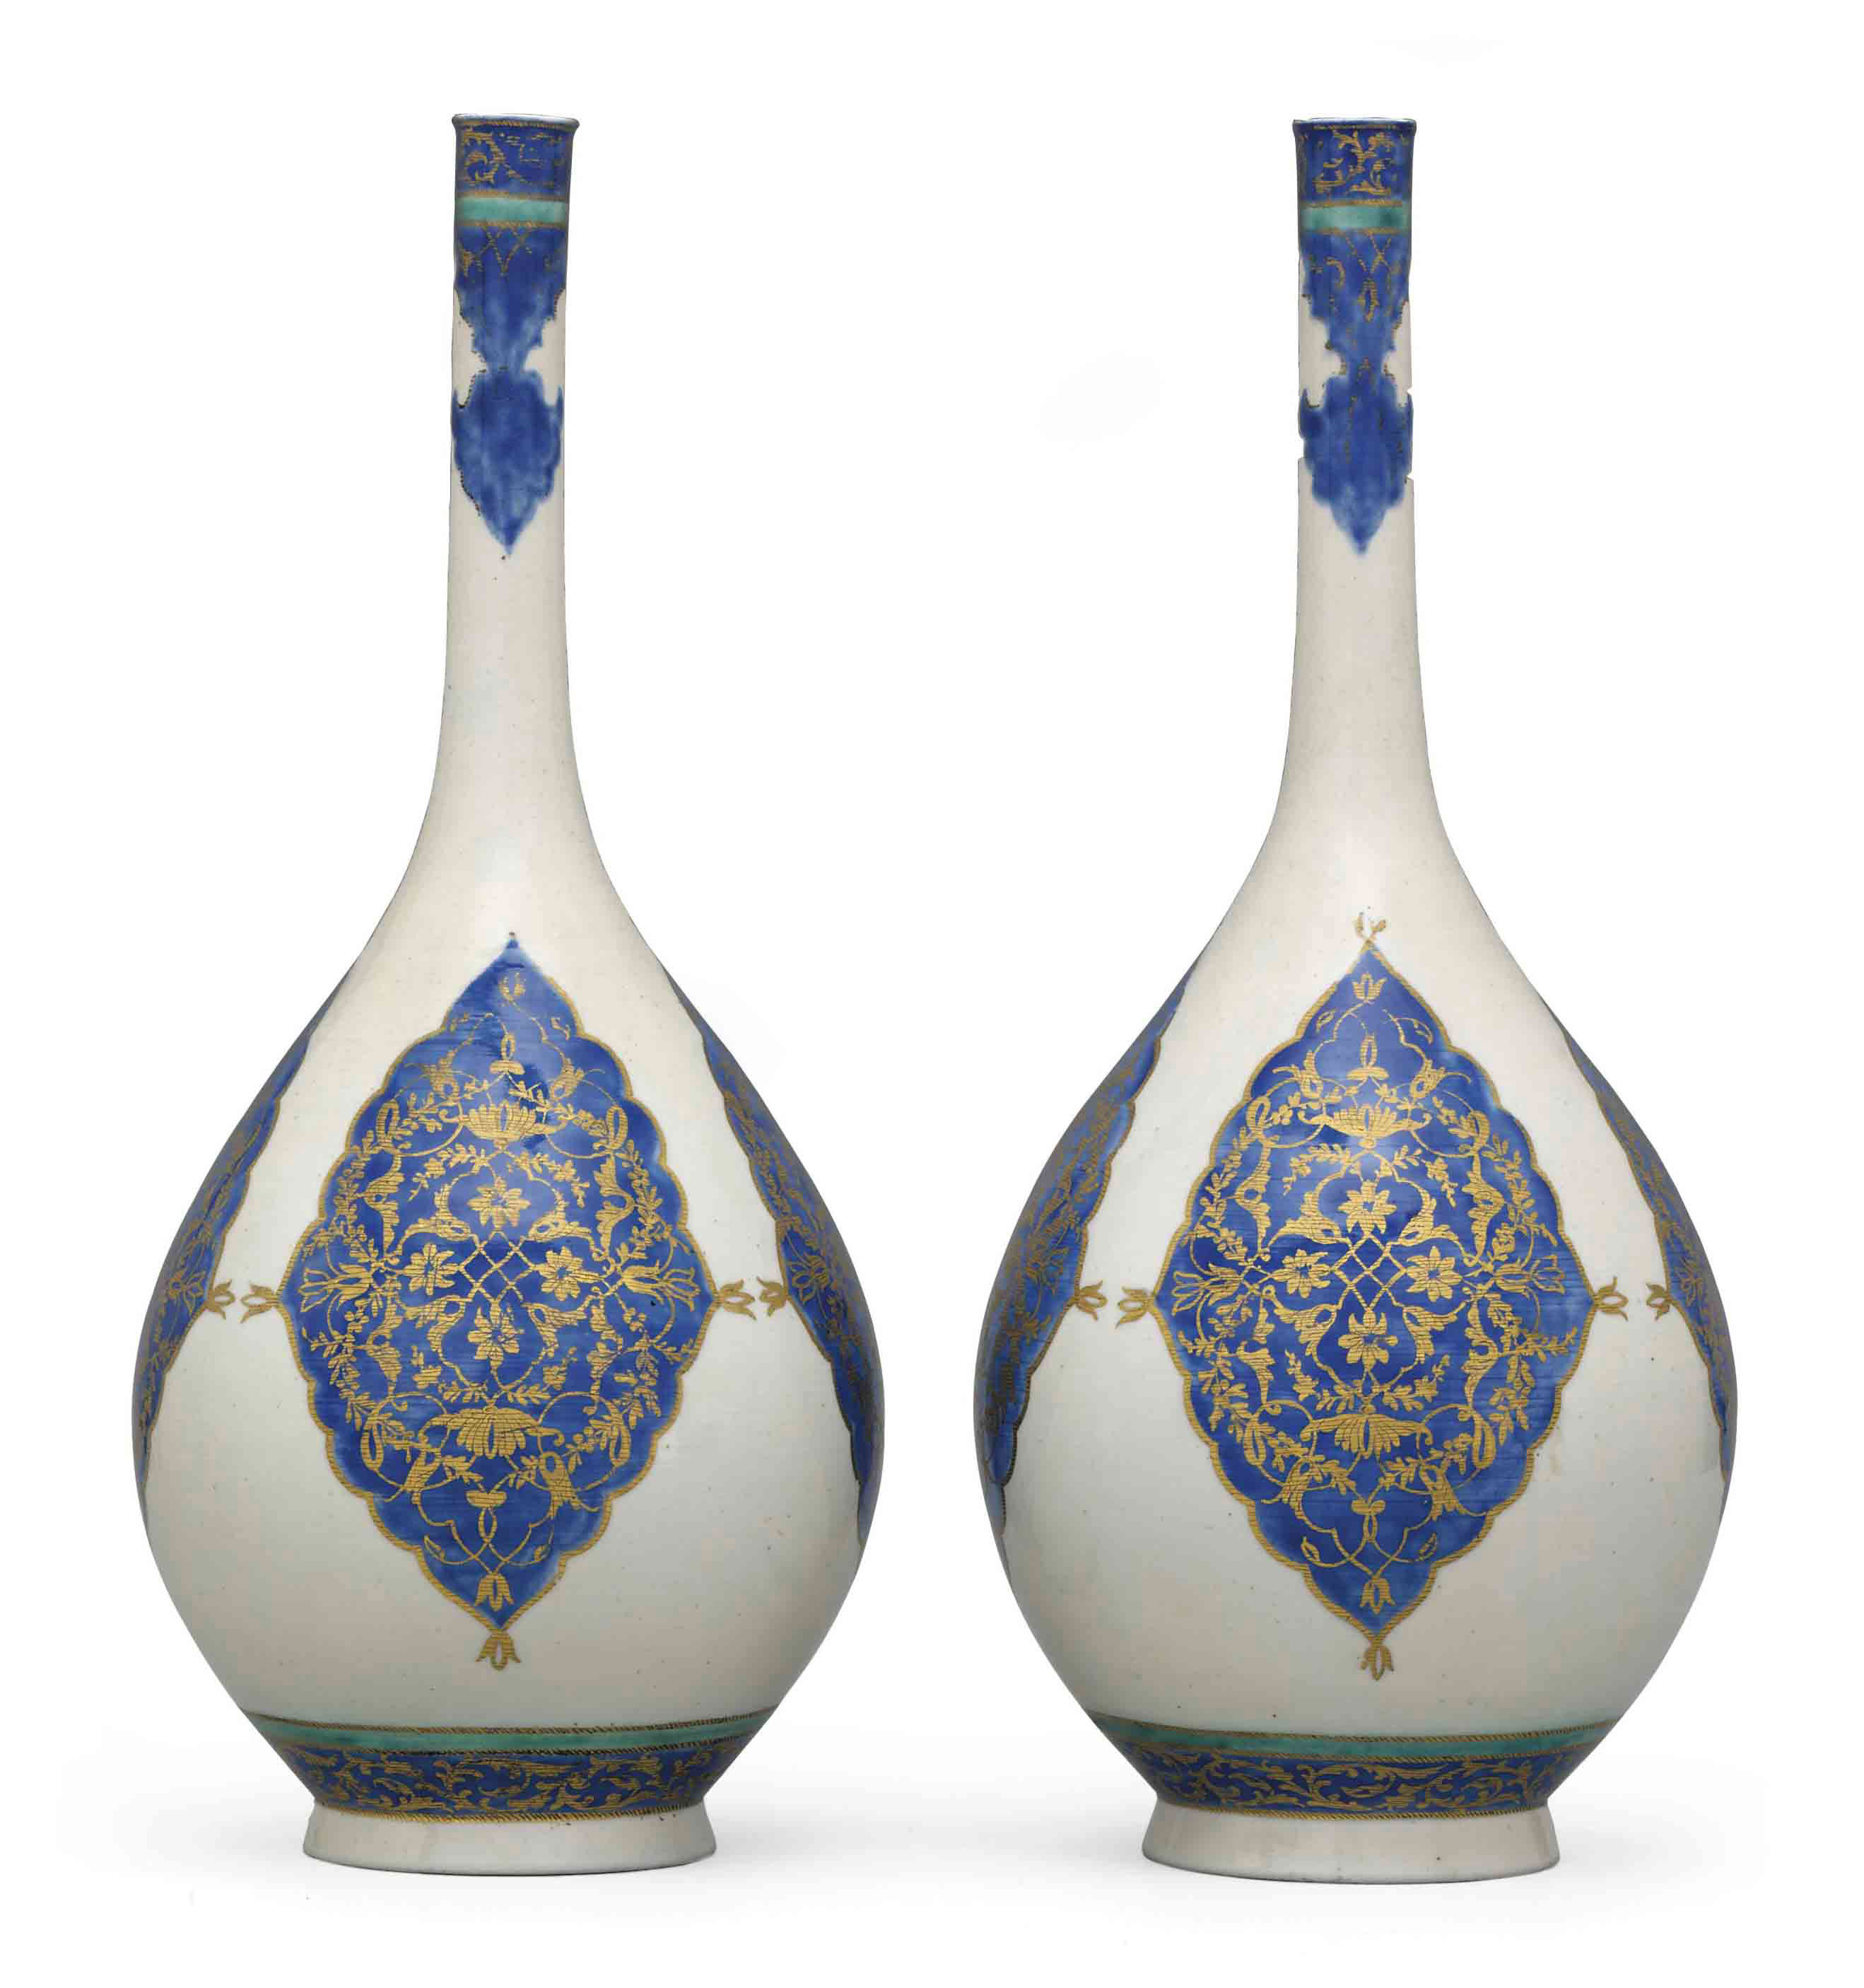 A PAIR OF LARGE BLUE, GREEN AND WHITE BOTTLE VASES